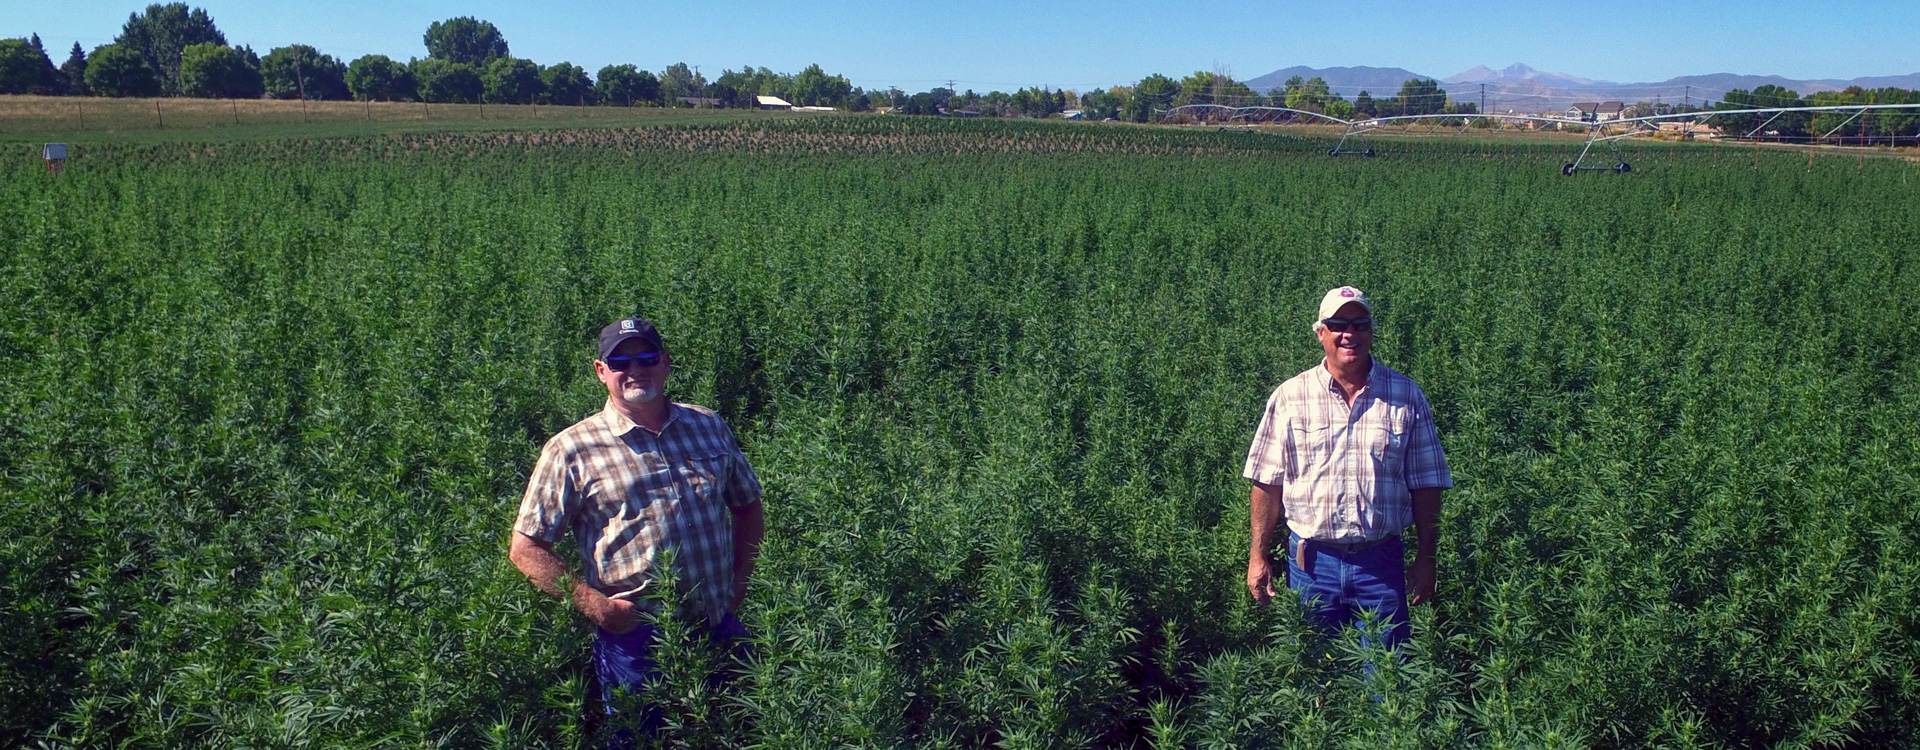 Owners in hemp farm grow field